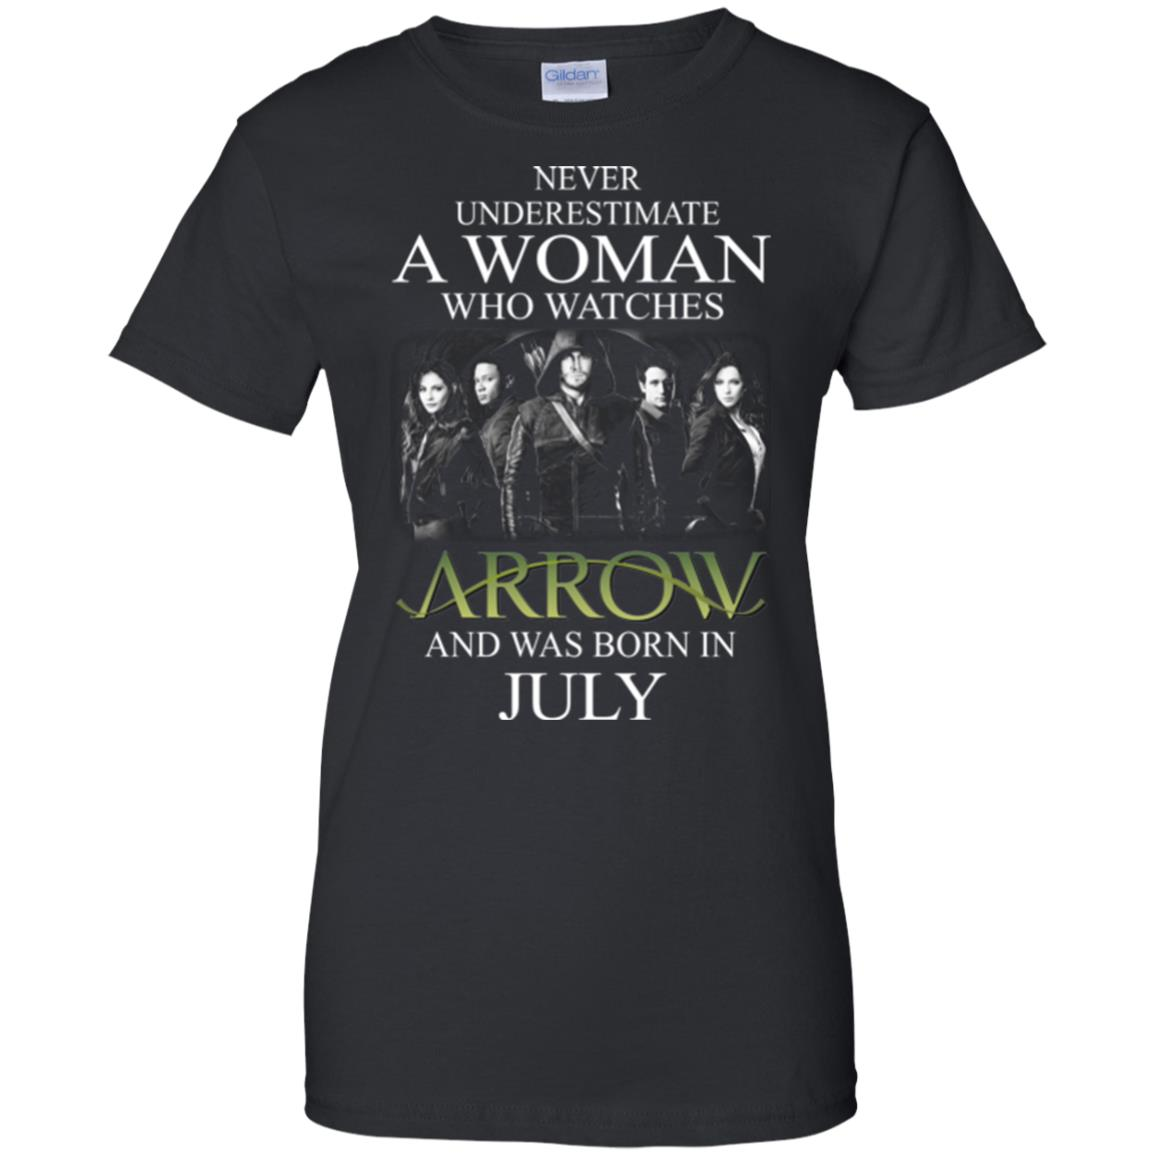 Never Underestimate A woman who watches Arrow and was born in July shirt - image 1528